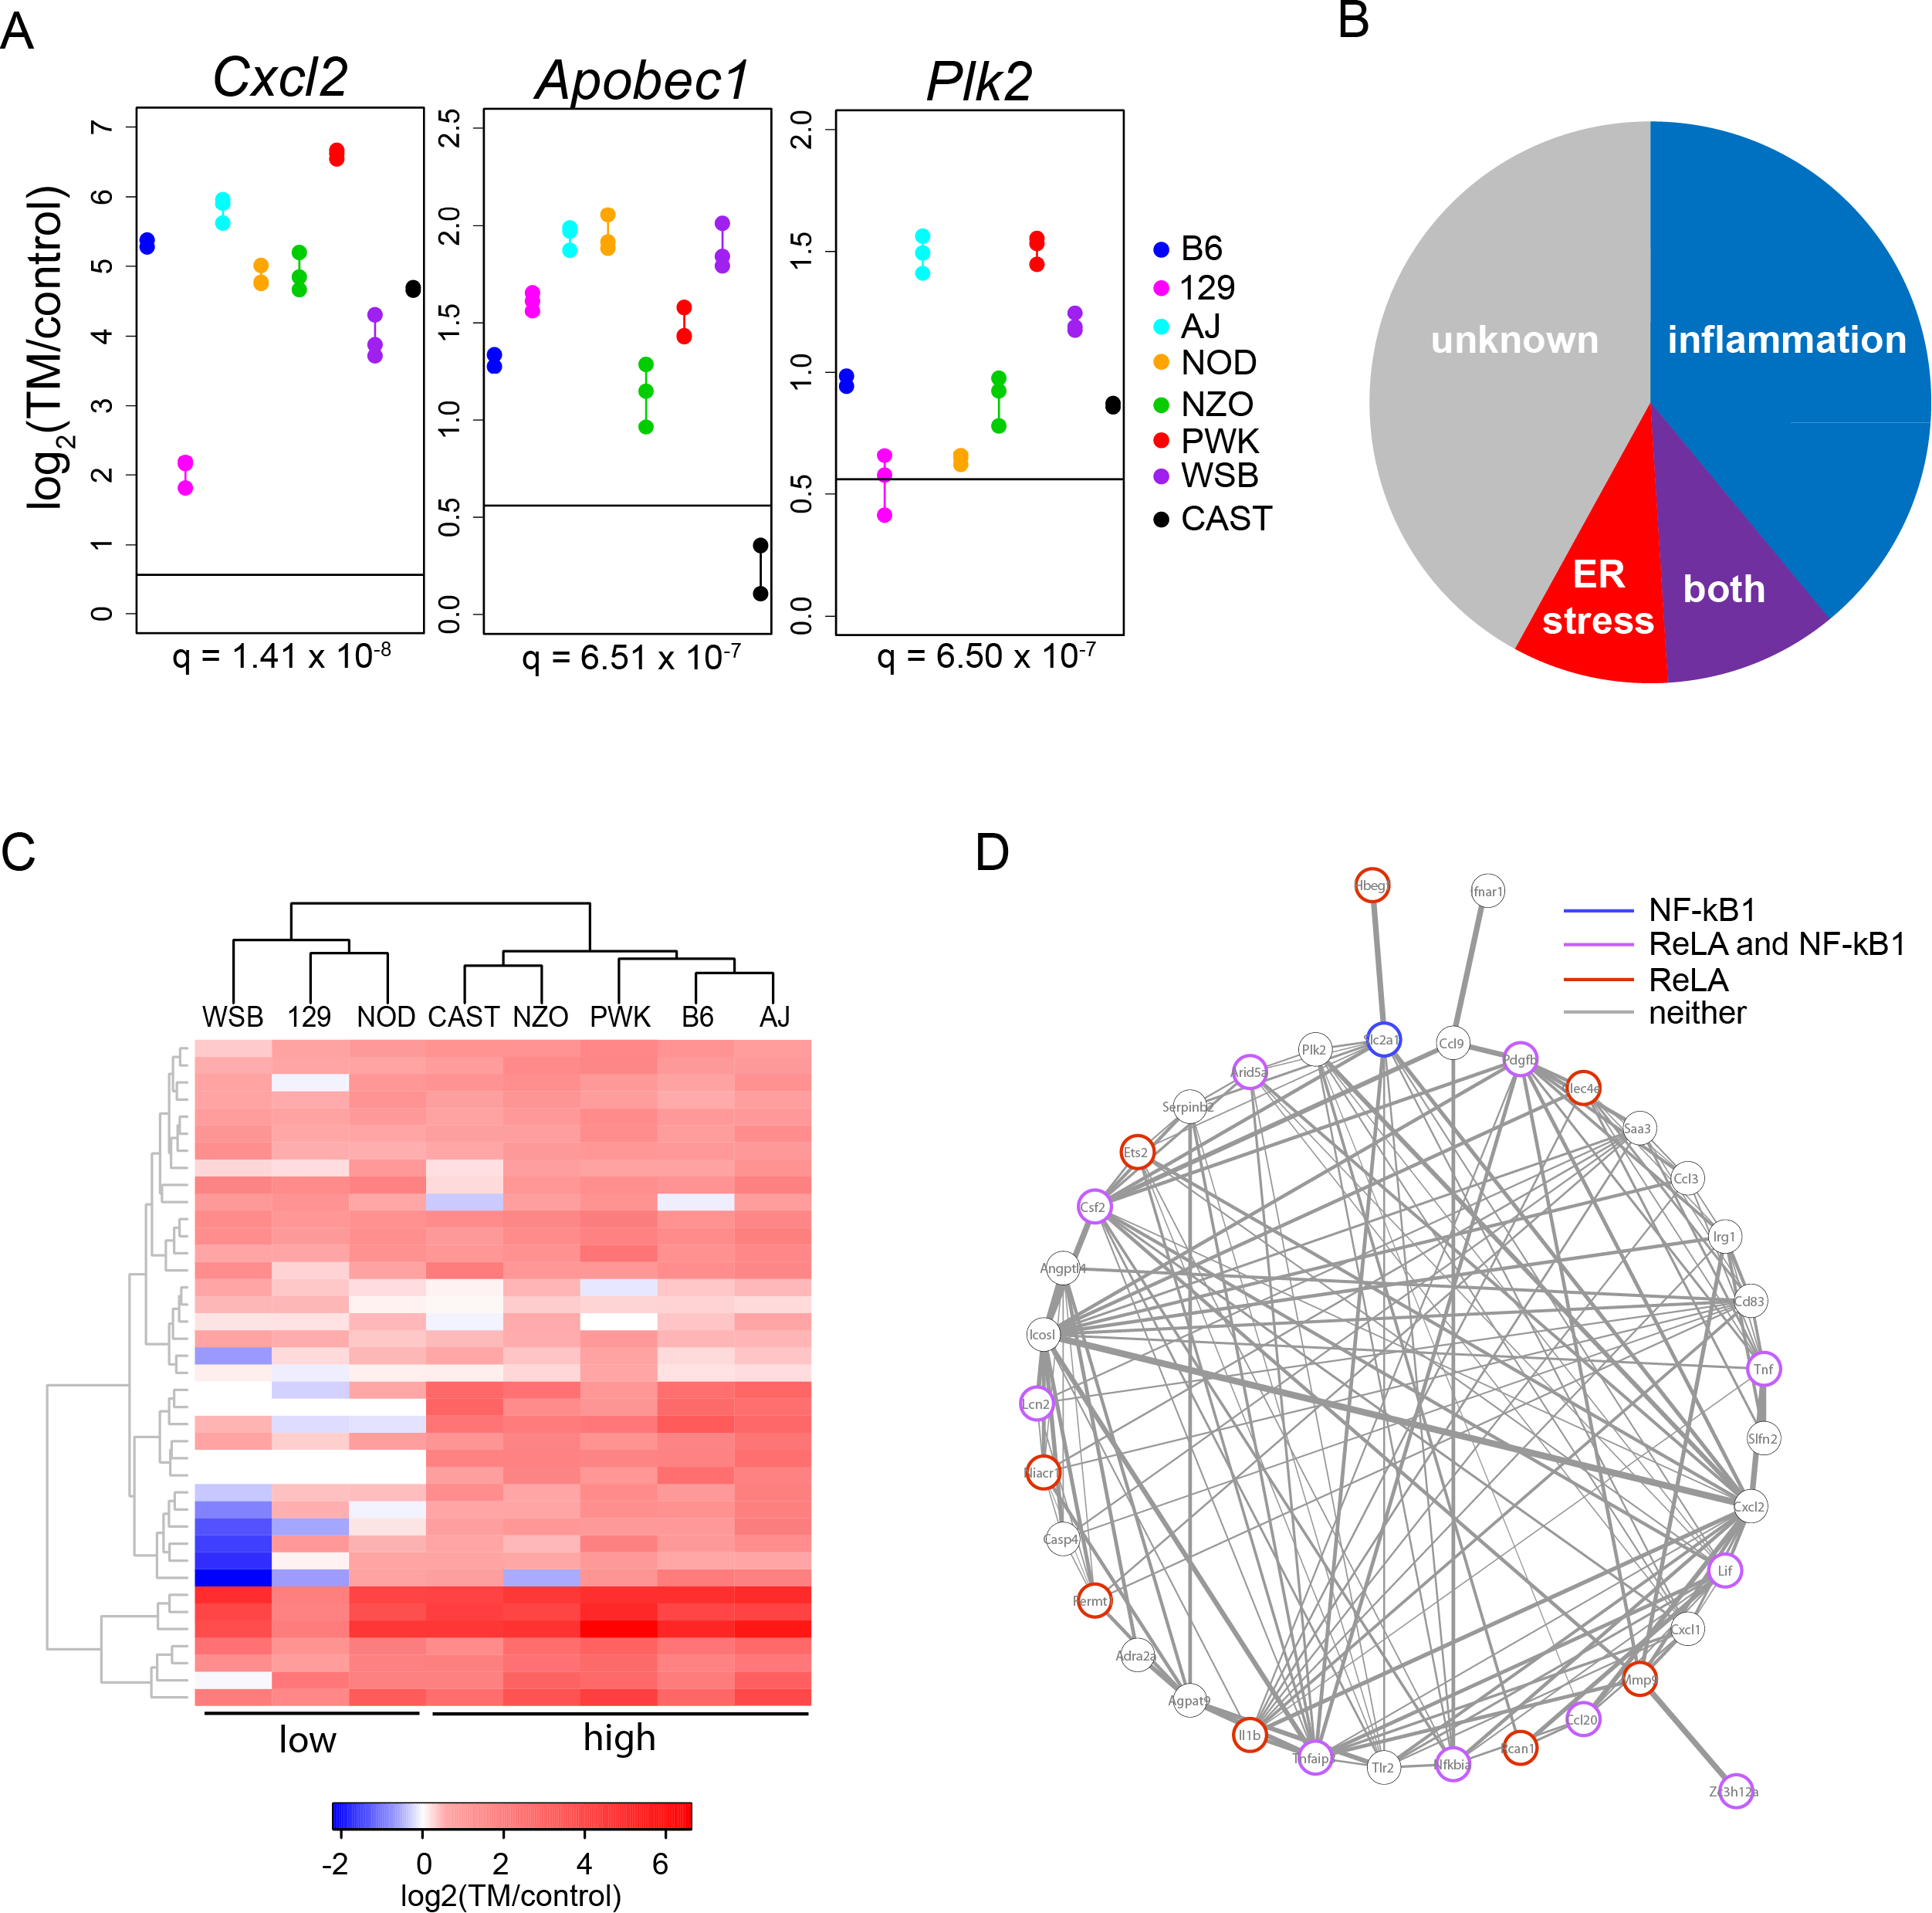 ER stress-induced genes with a strain effect are enriched for inflammation functions.